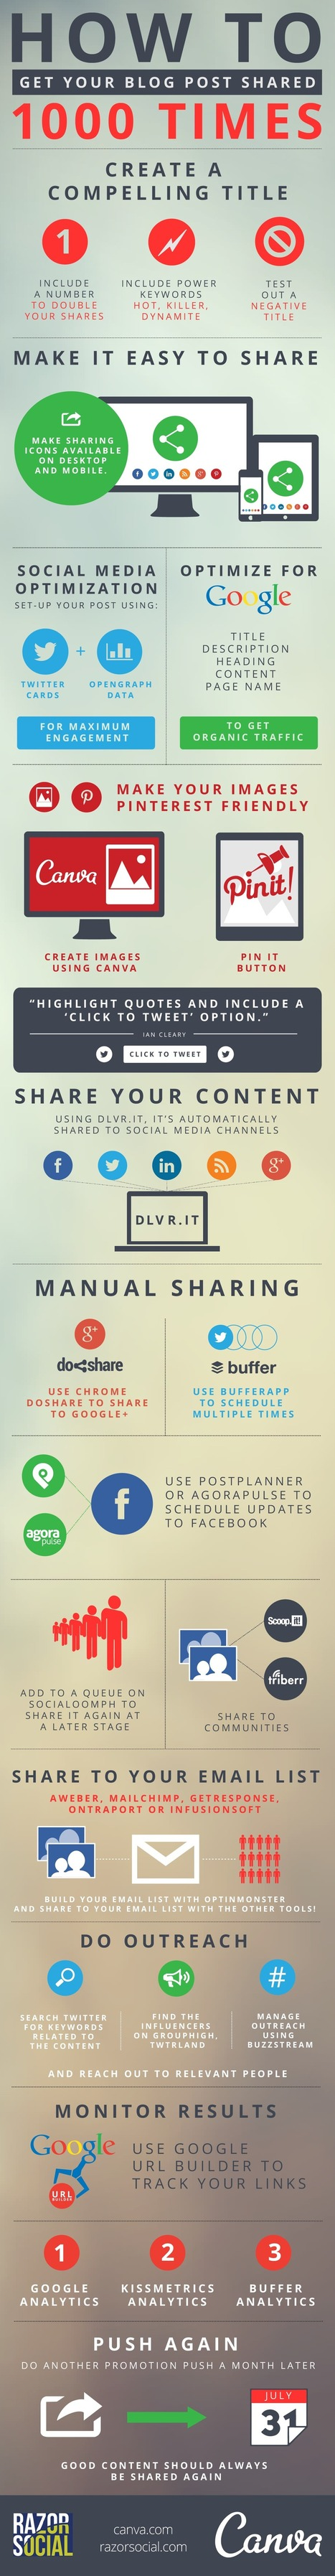 How to Promote Your Blog Content to Get 1,000 Social Media Shares | Infographic | Social Media | Scoop.it